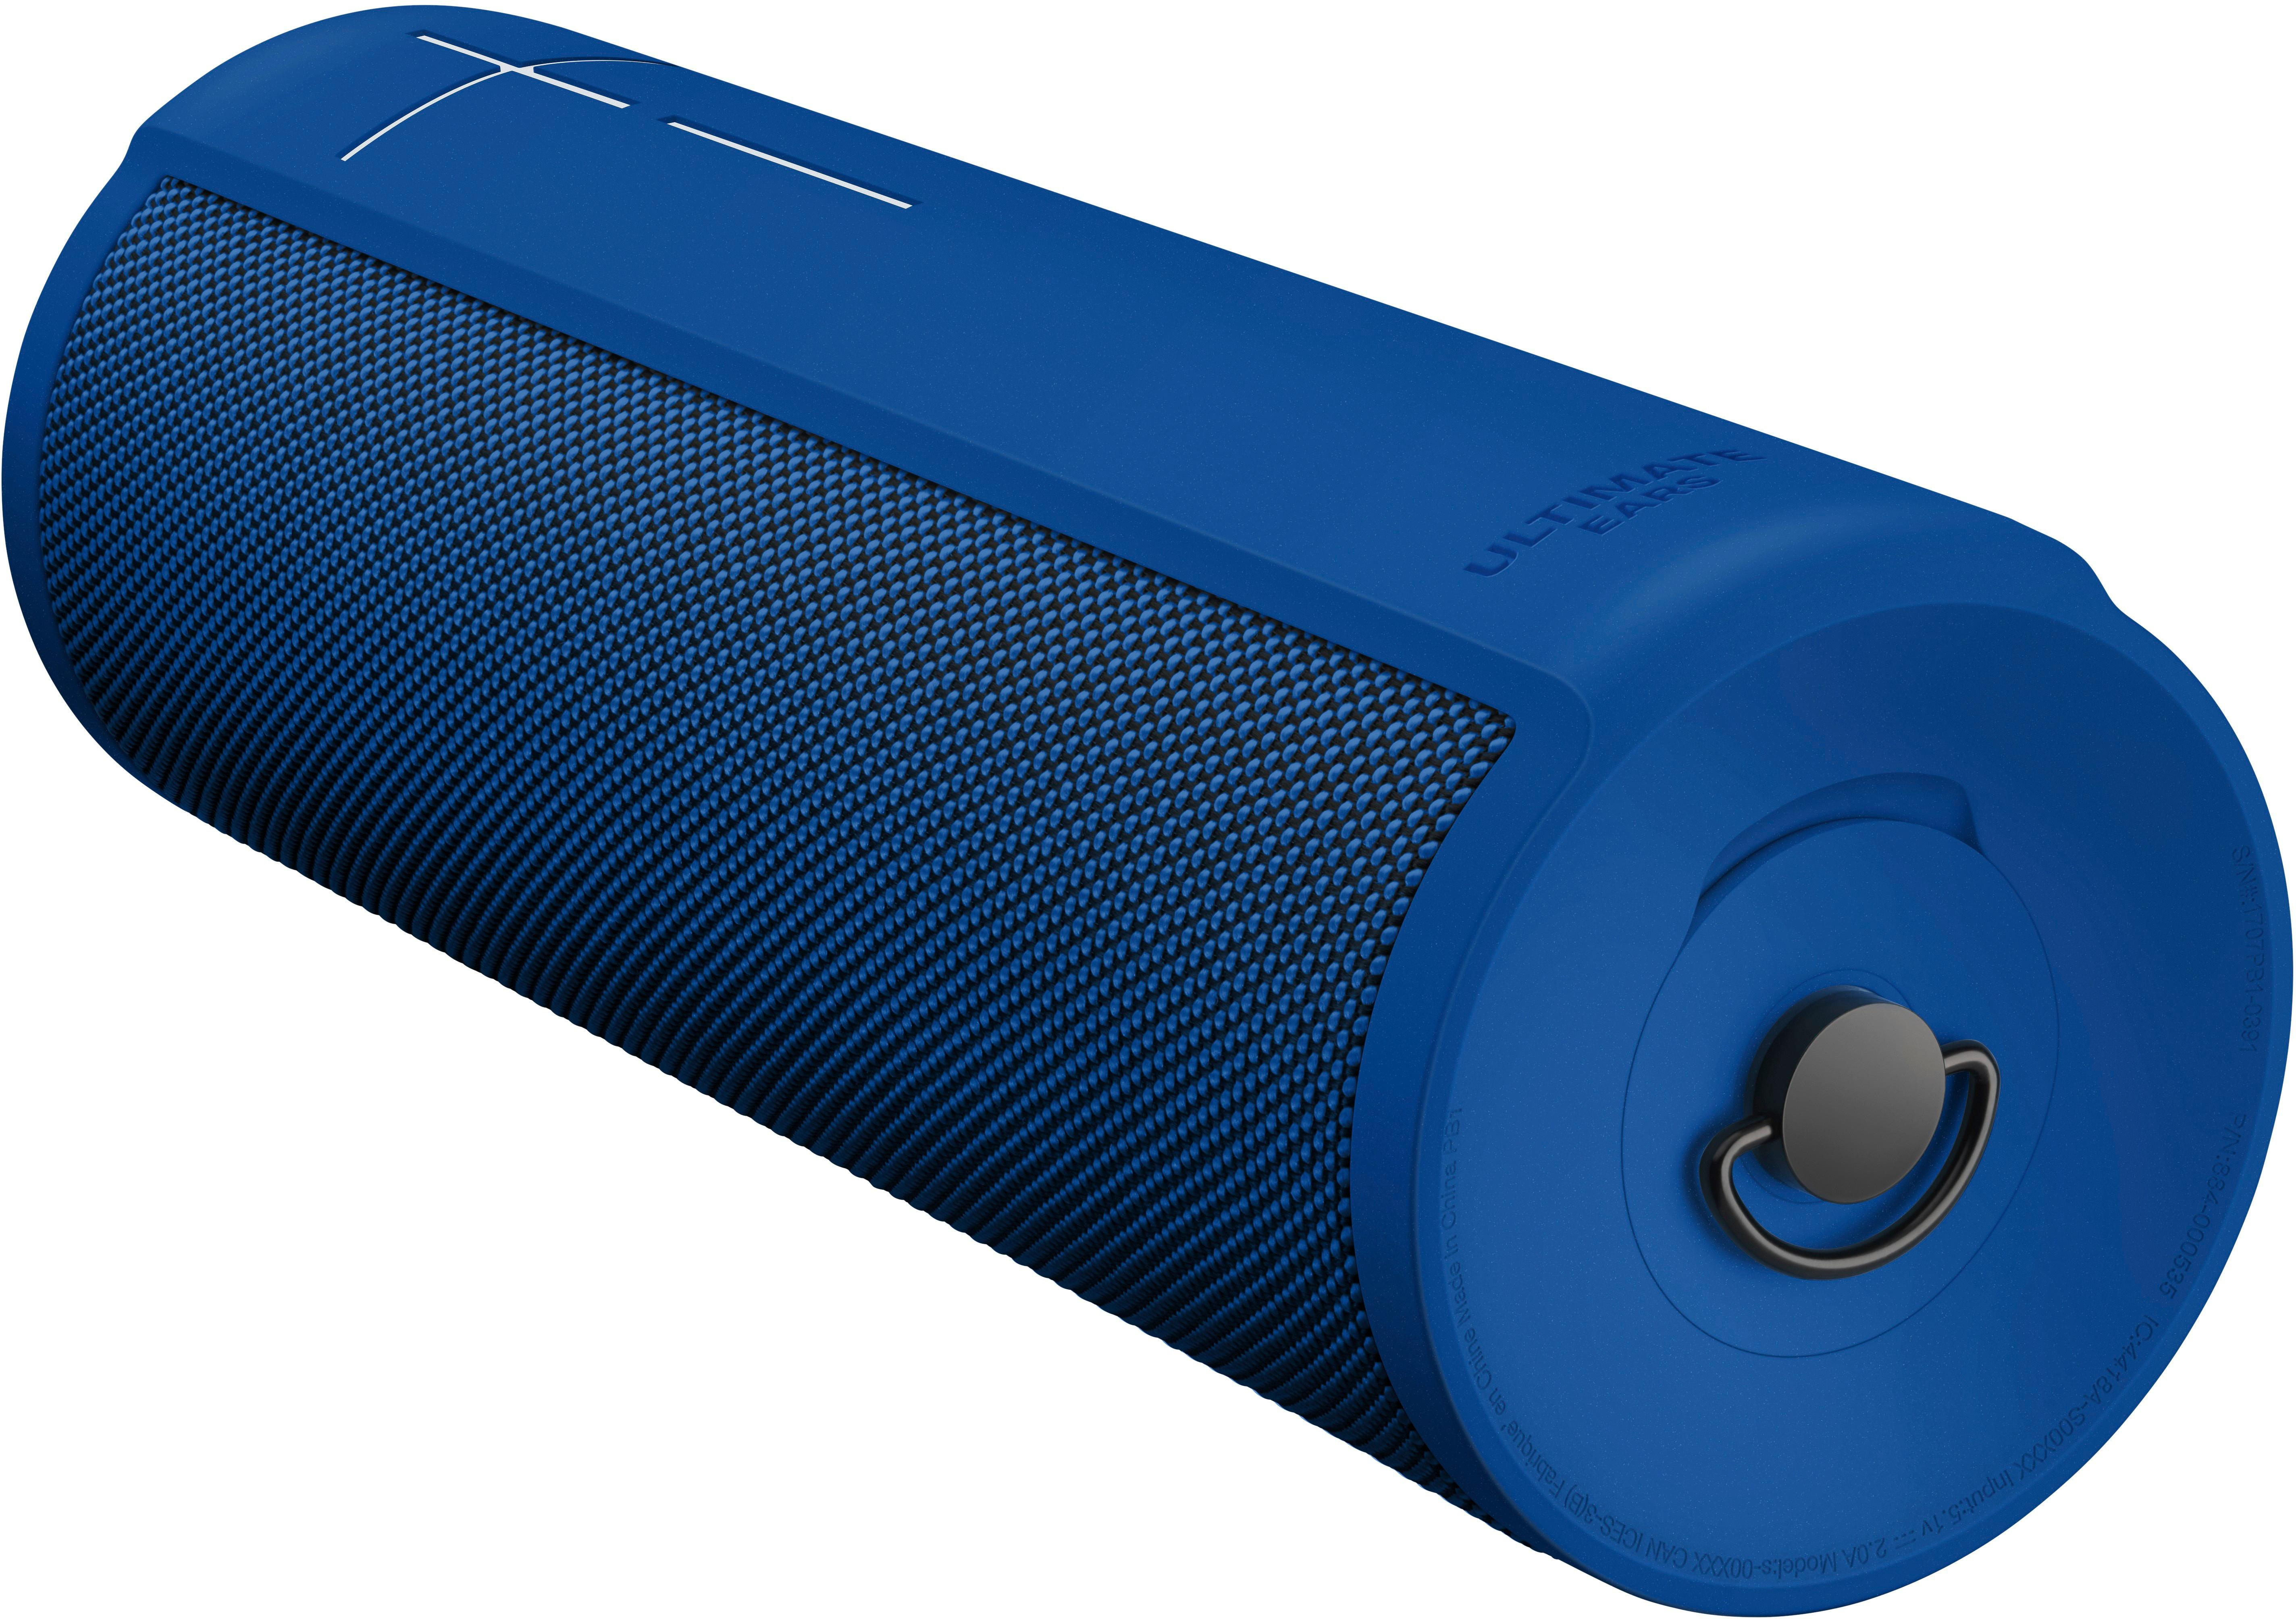 Ultimate Ears MEGABLAST and BLAST portable speakers from Best Buy